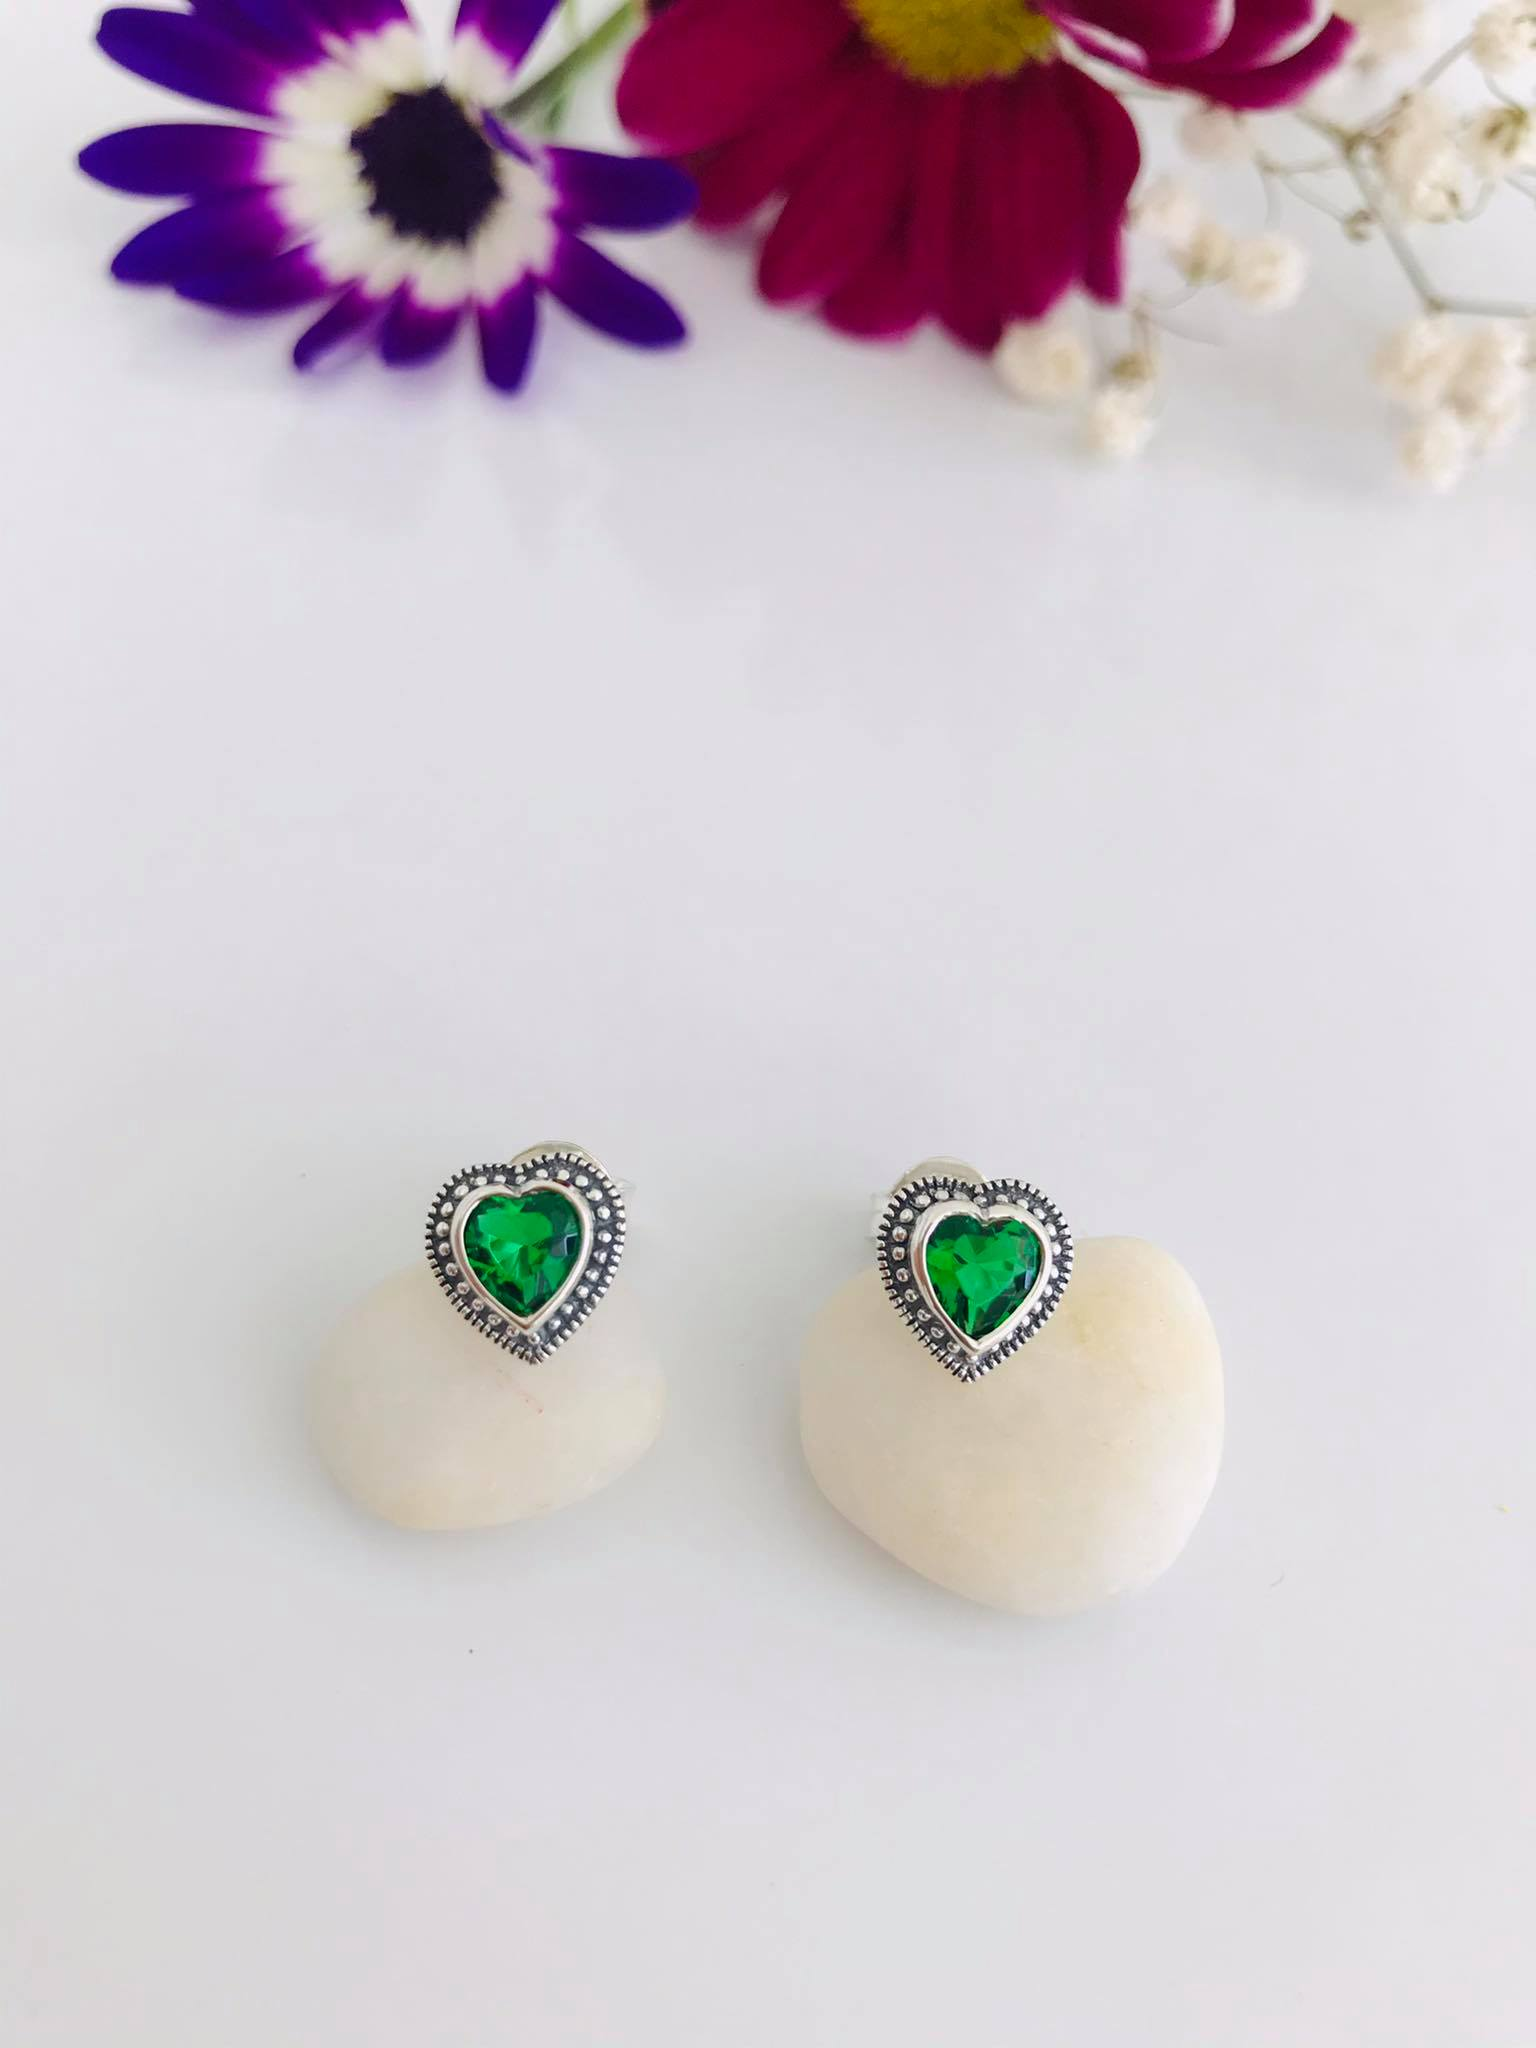 Emerald & Marcasite Heart Earrings Image